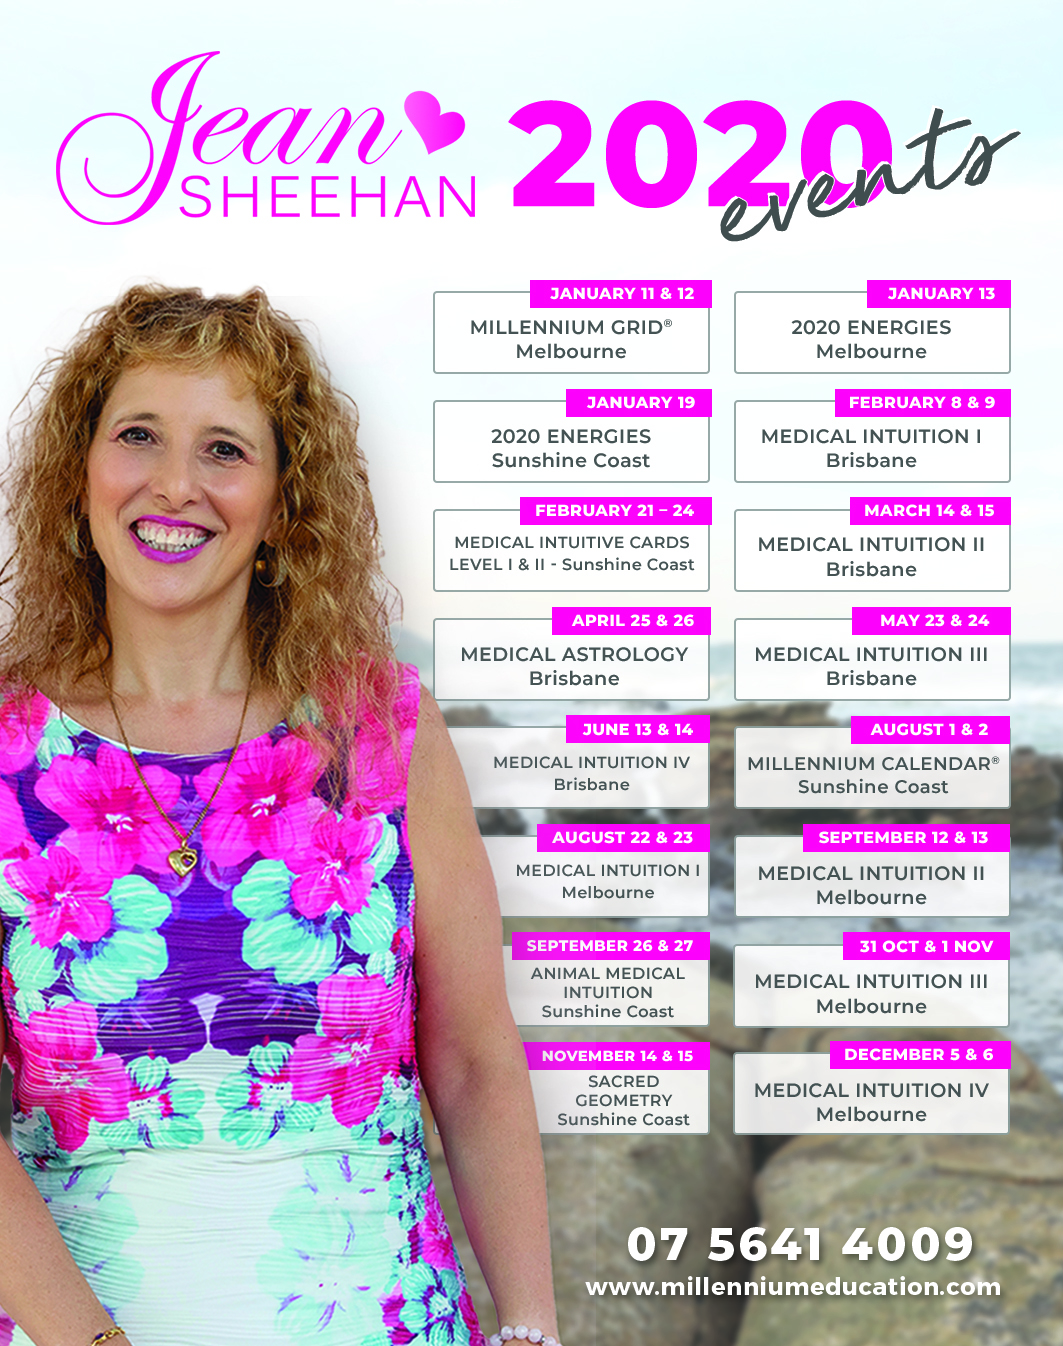 ean Sheehan 2020 Course and Event List